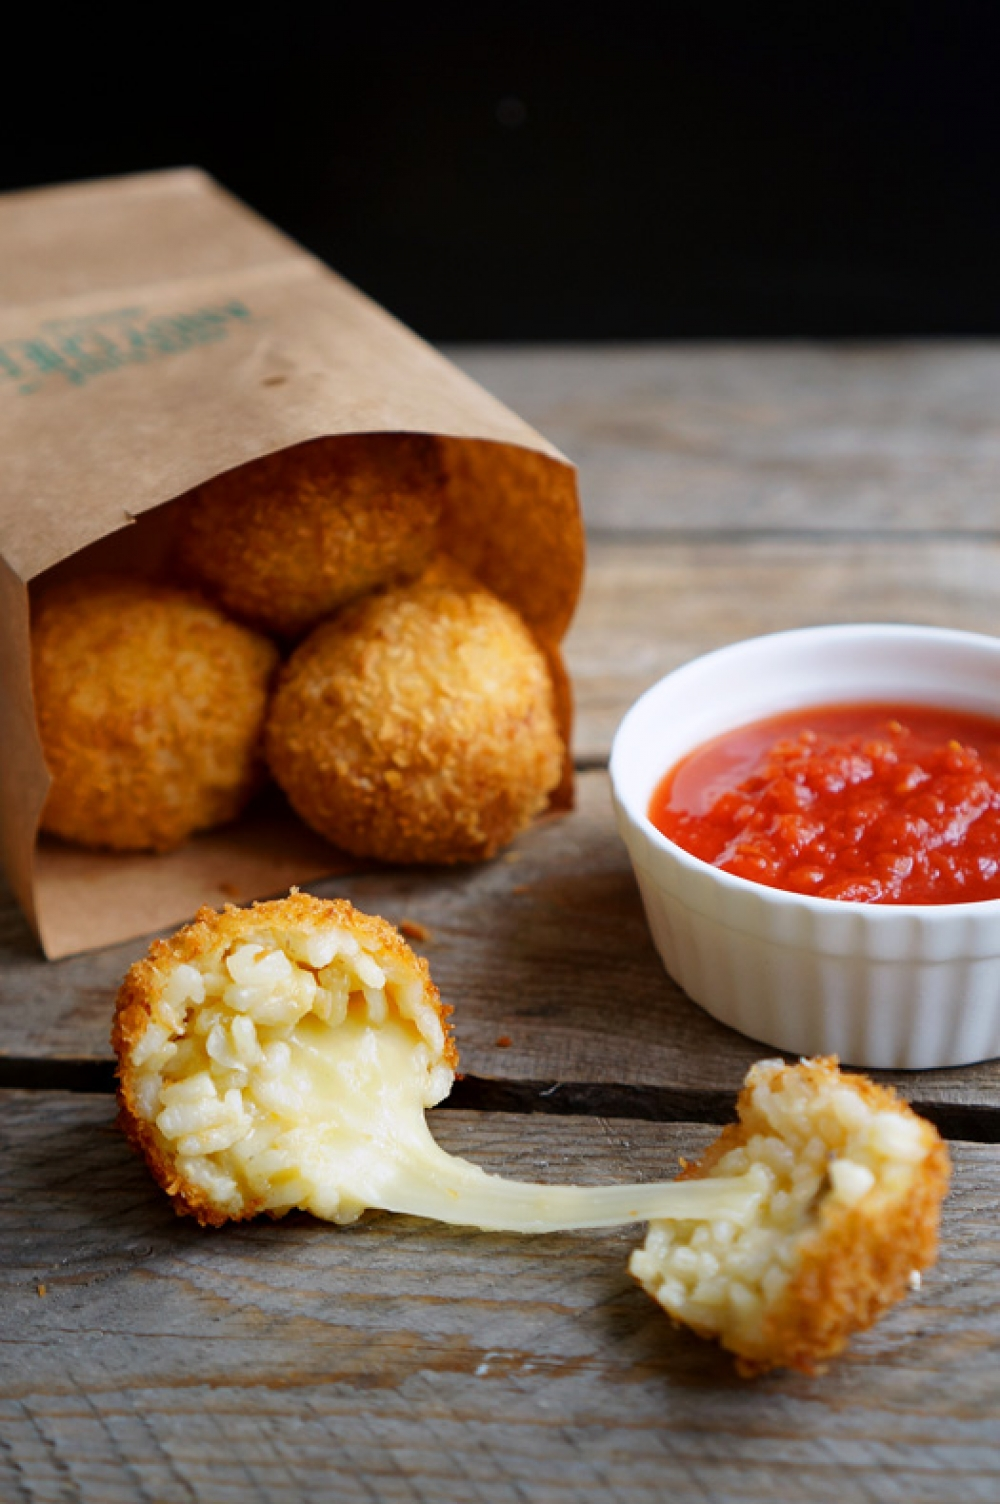 Arancini from risotto with cheese